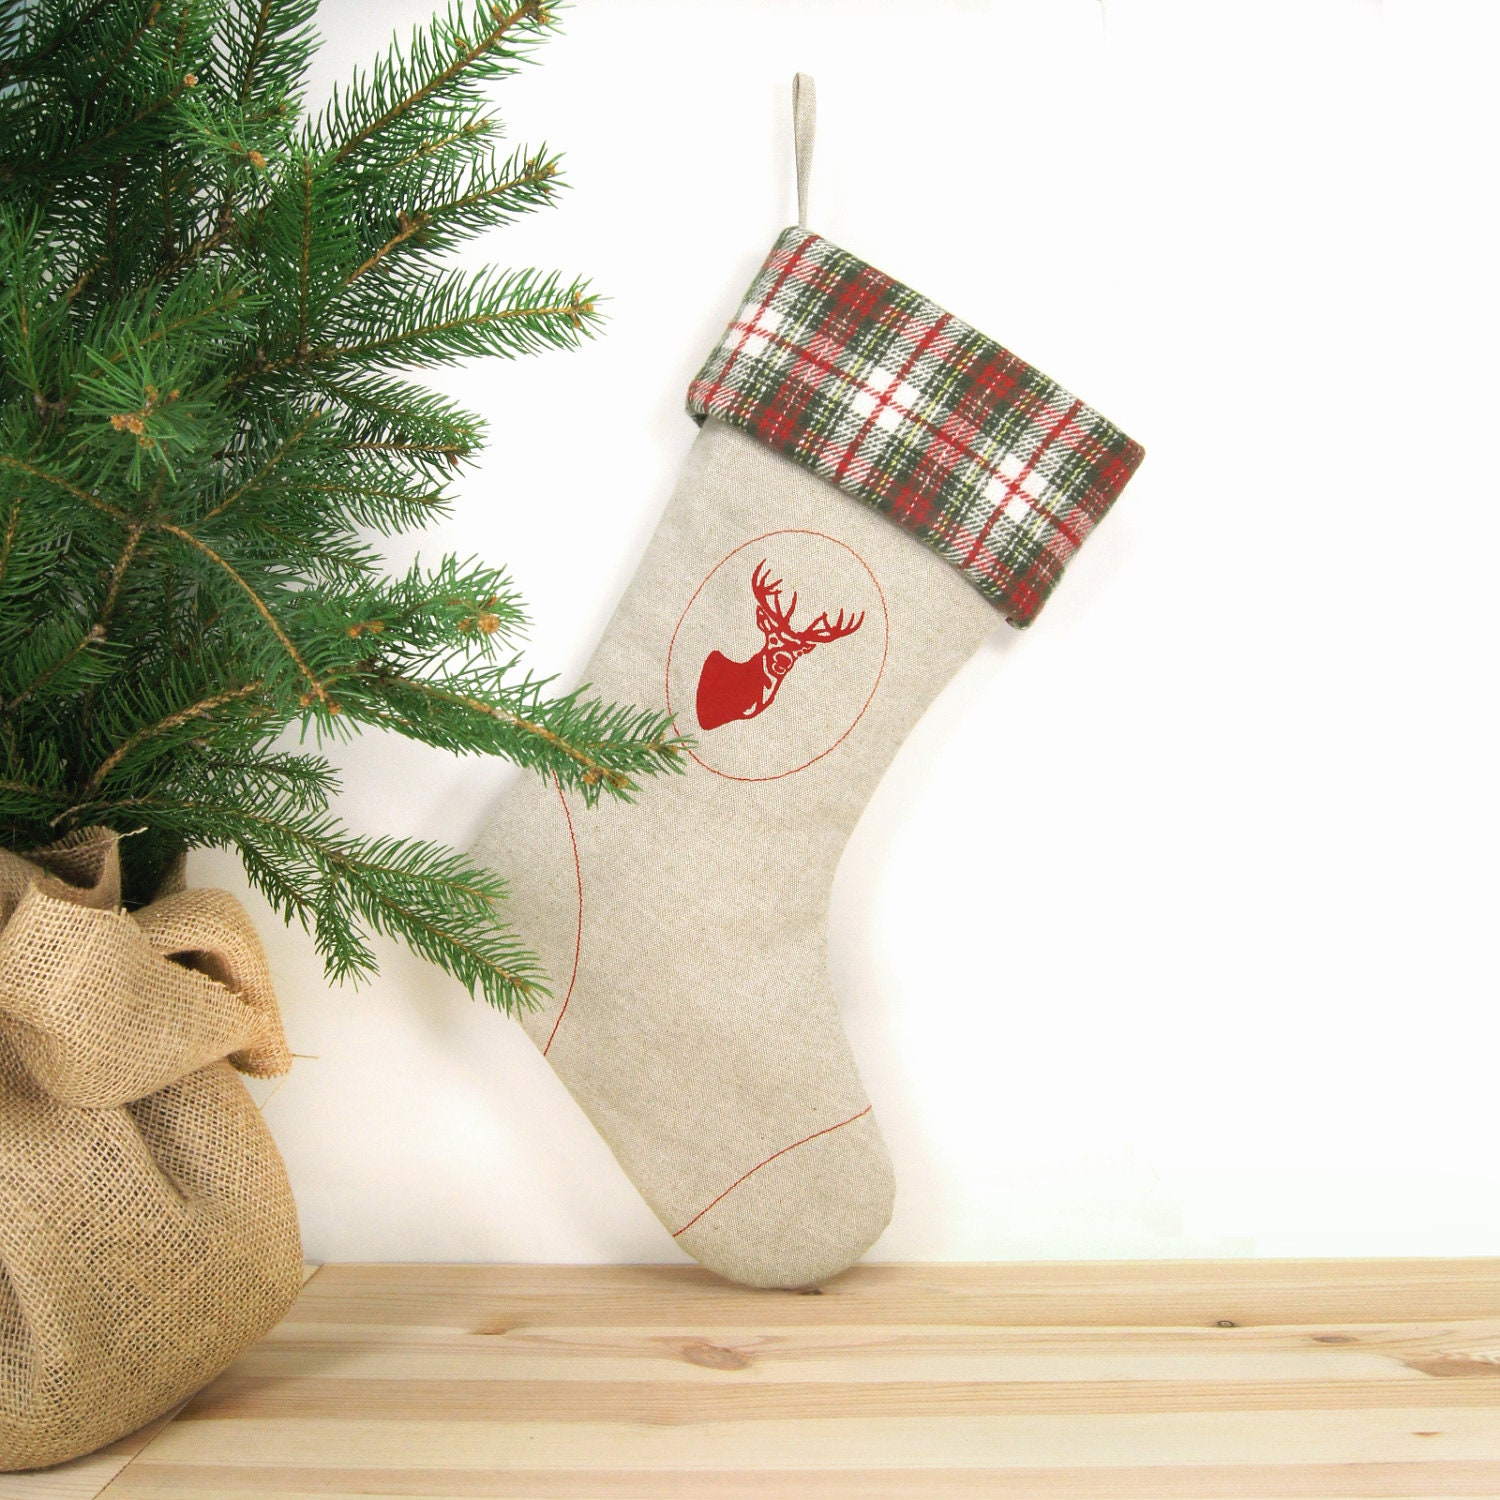 Rustic Woodland Christmas Stocking Red deer print on natural